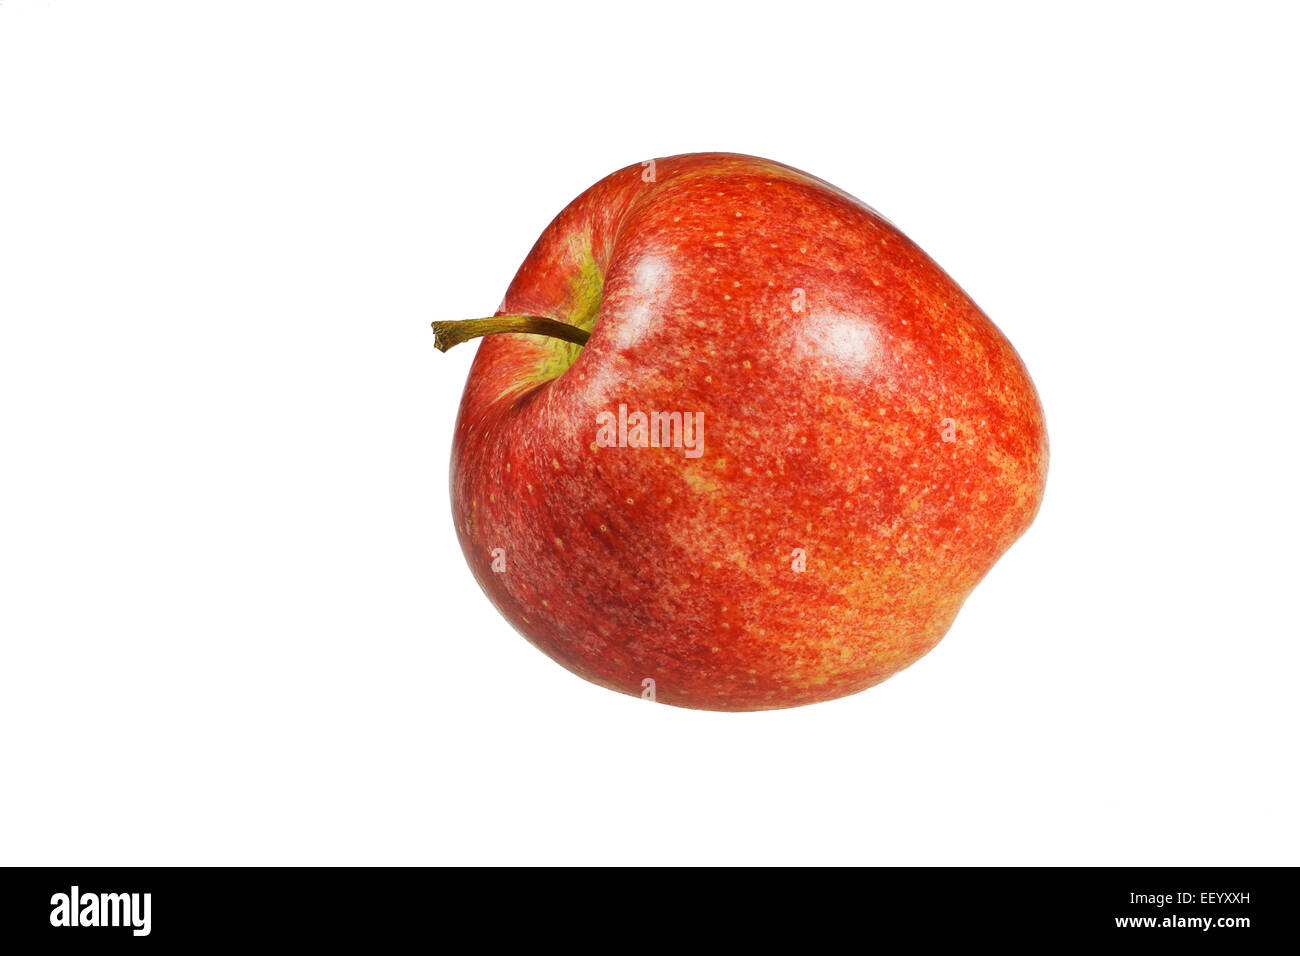 A red apple is optional. - Stock Image